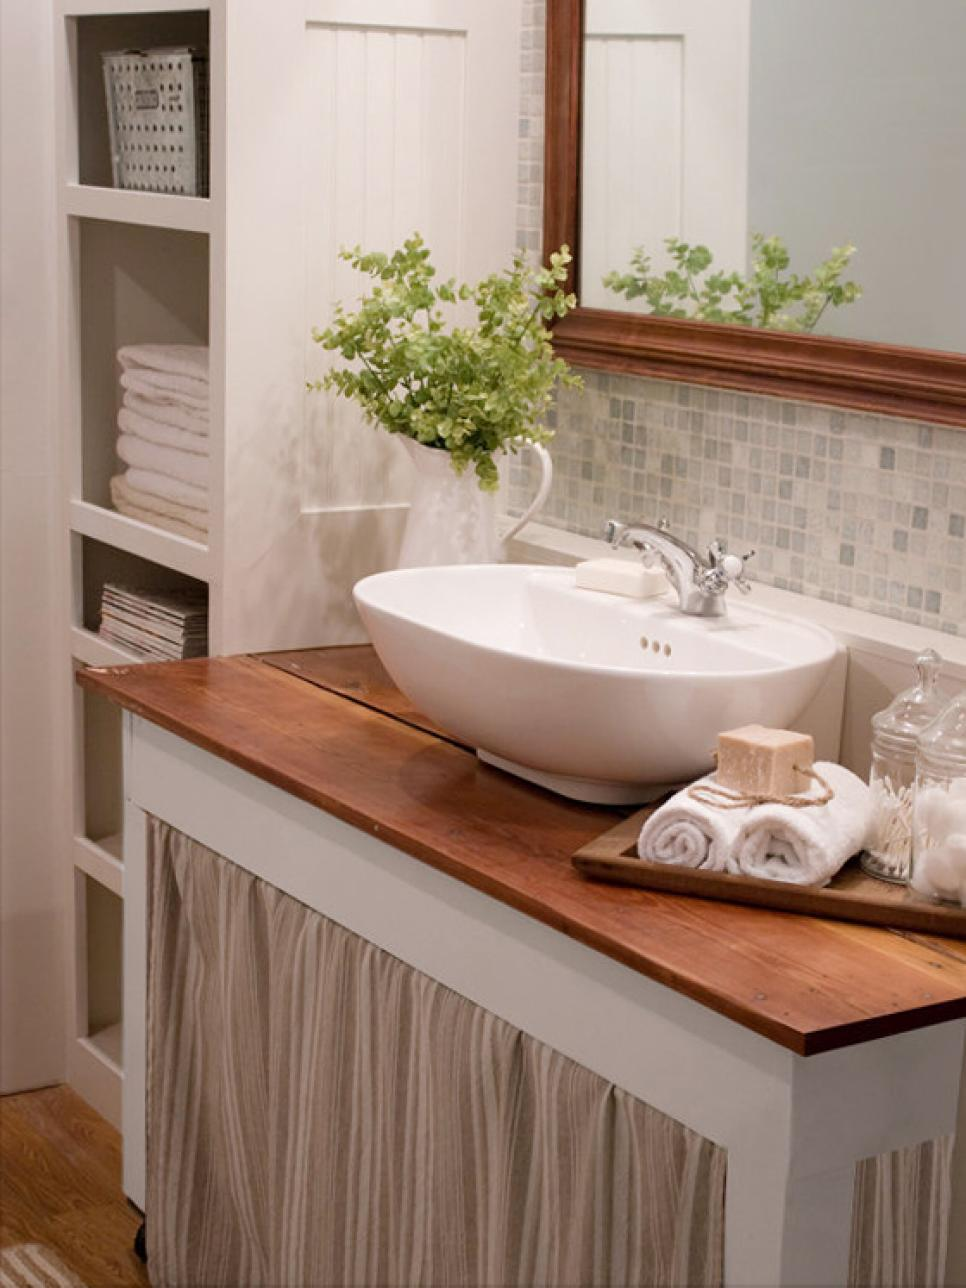 20 small bathroom design ideas hgtv for Hgtv small bathroom design ideas